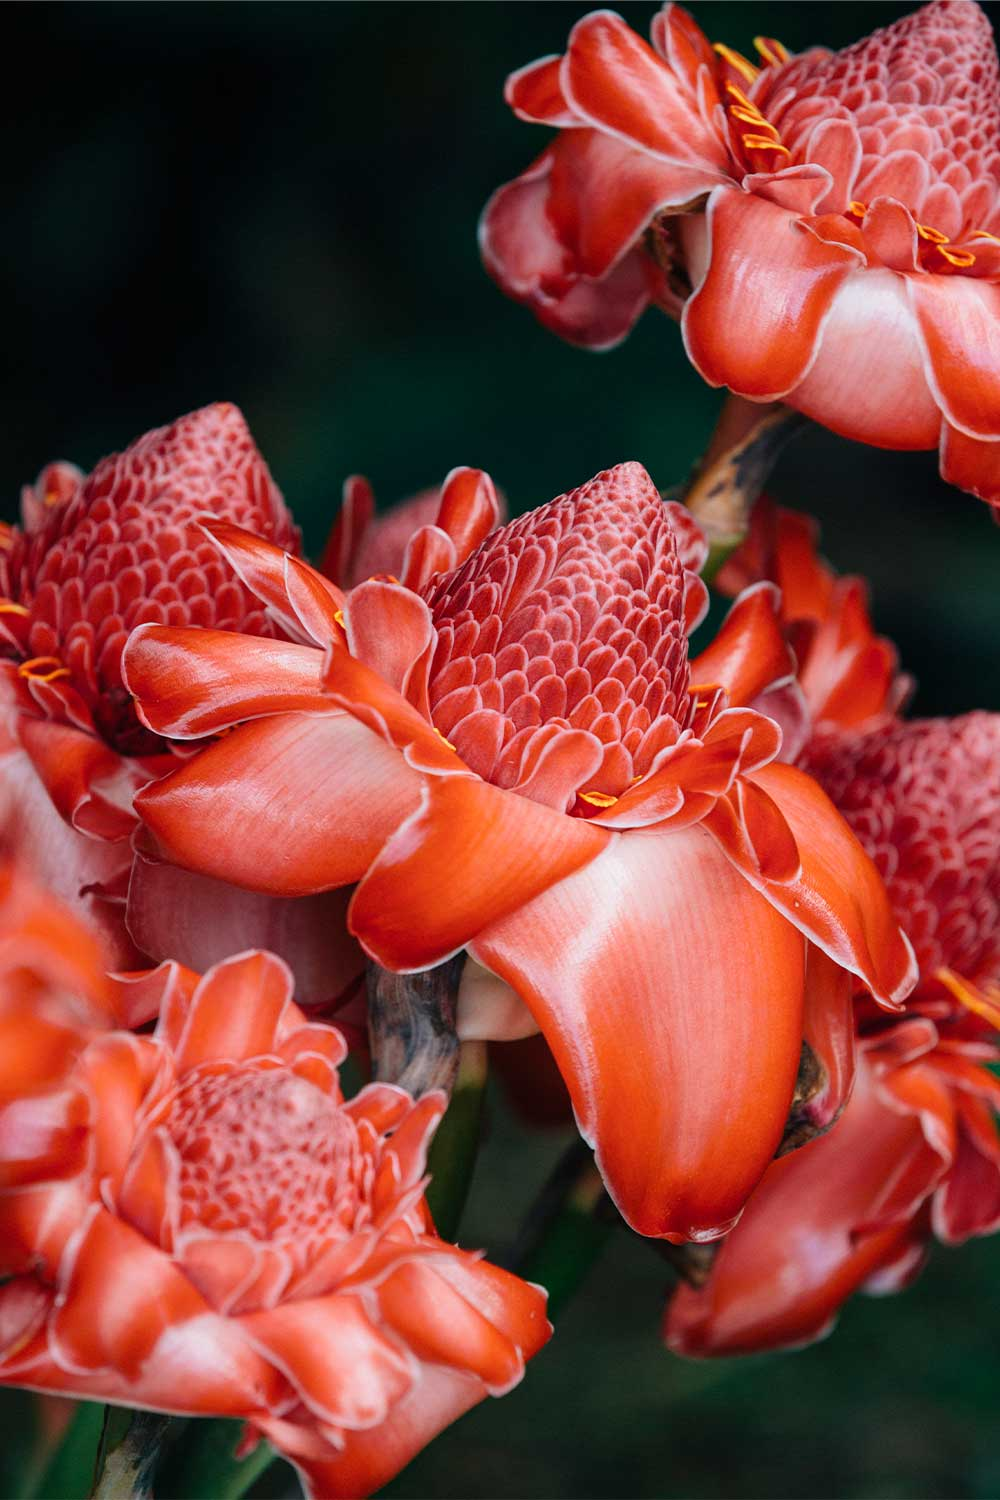 Close up of vibrant red flowers